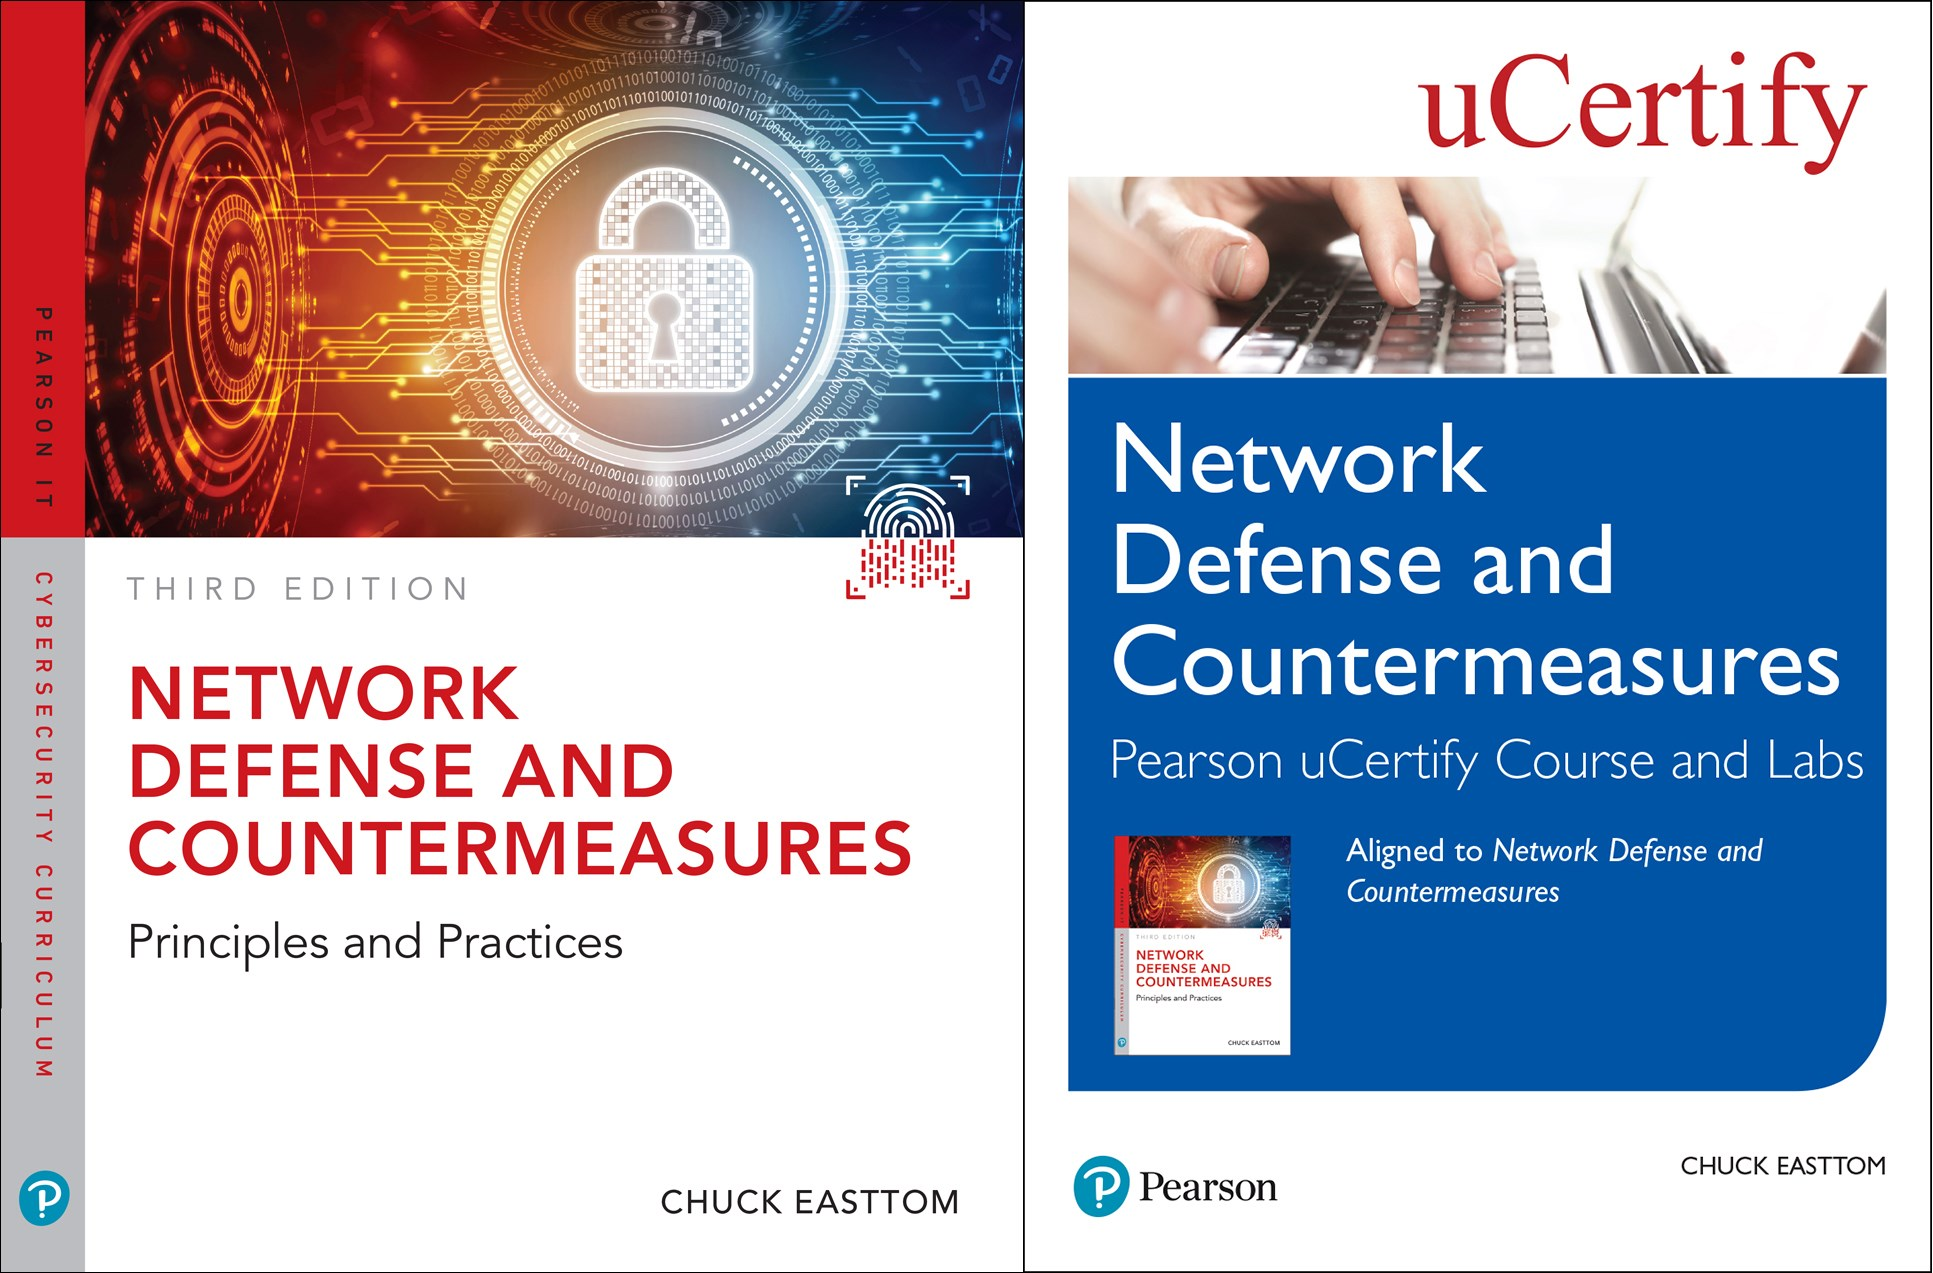 Network Defense and Countermeasures Pearson uCeritfy Course and Labs and Textbook Bundle